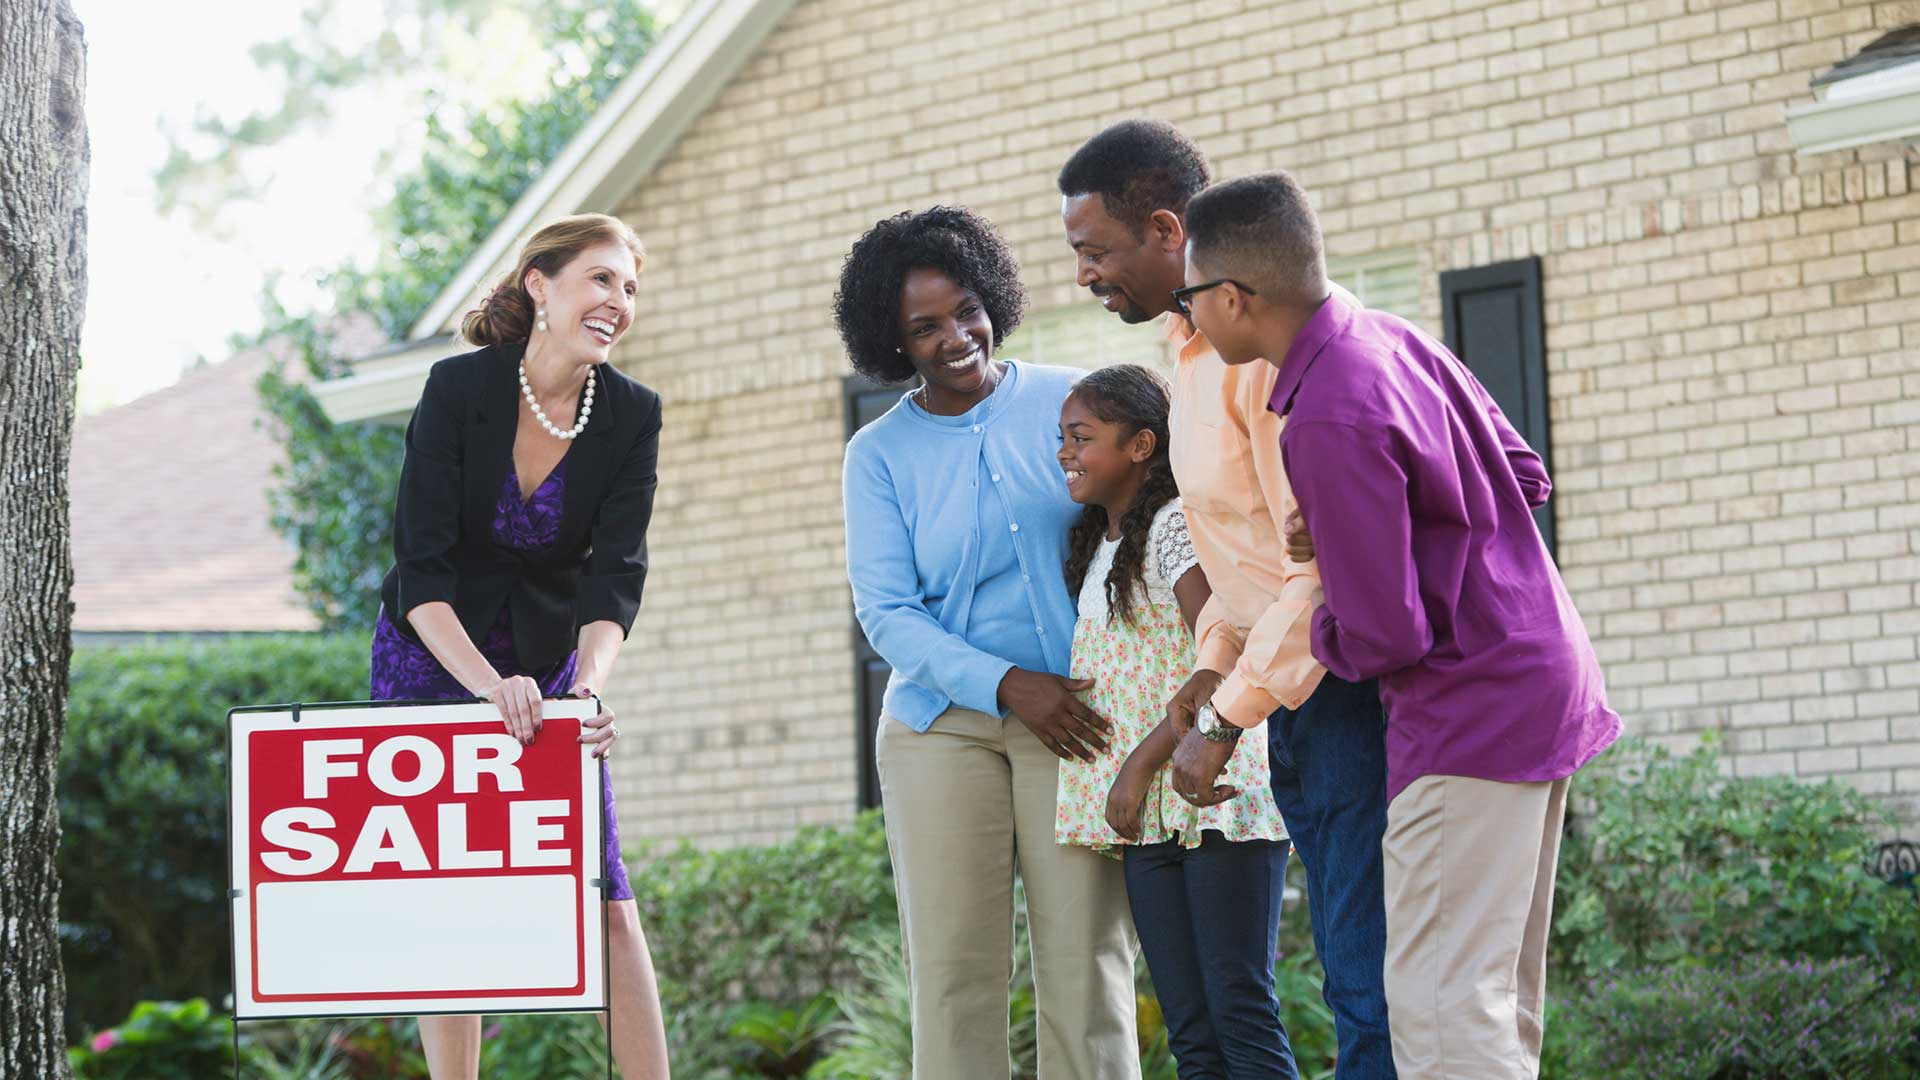 Why-You-Should-Have-a-Realtor-when-Selling-a-Home